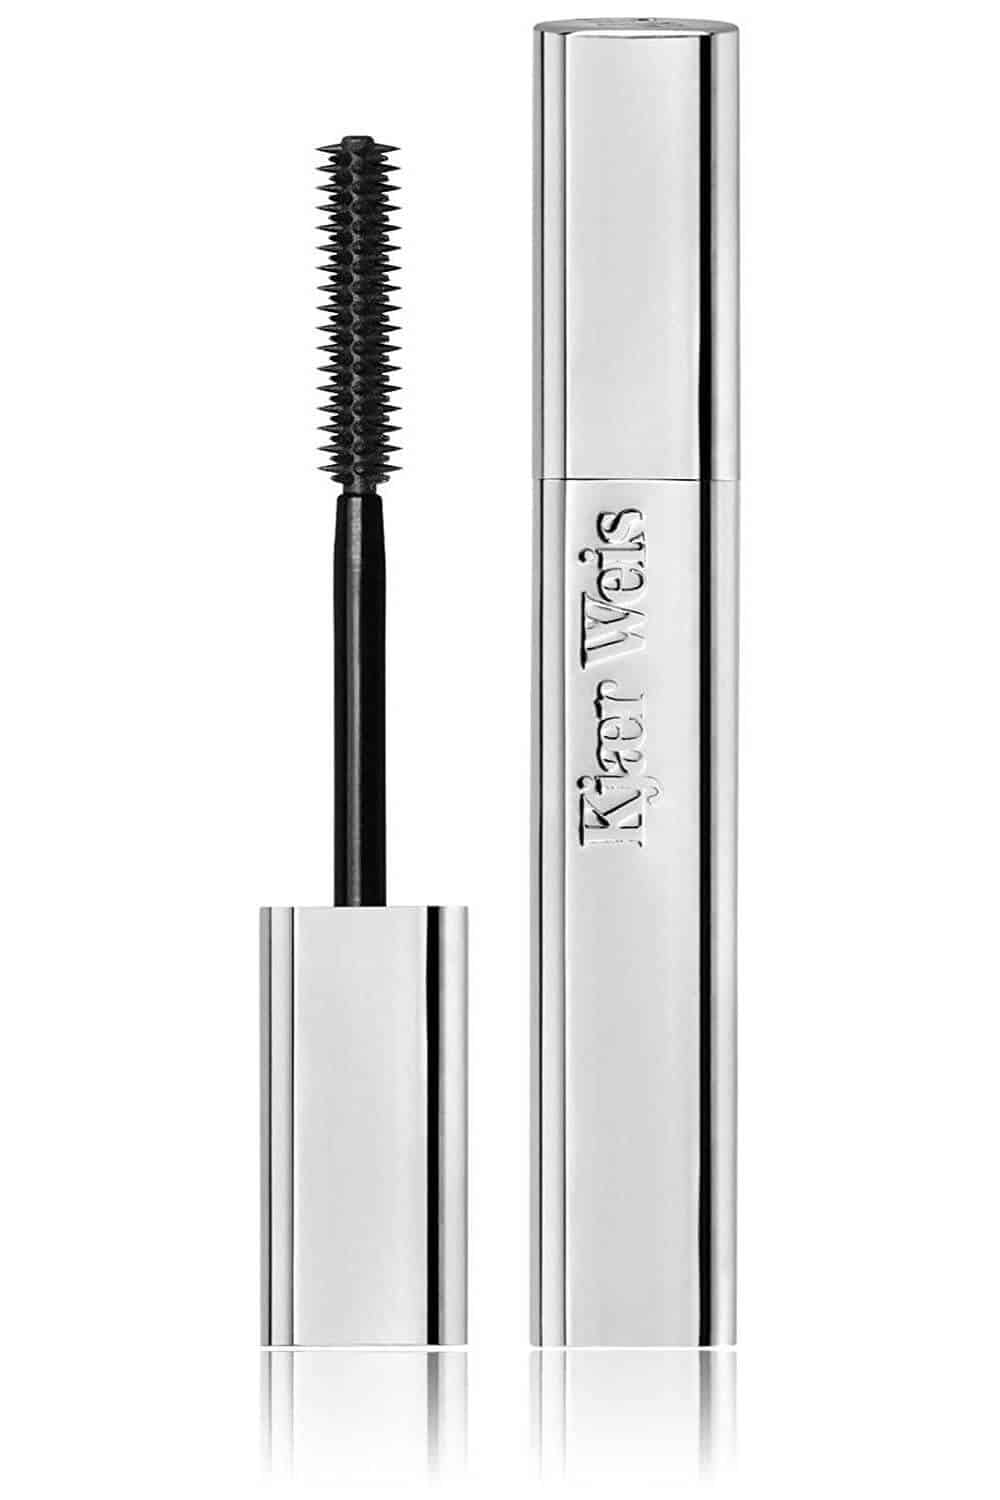 Zero waste looks good on everyone, just like long lashes! Lucky for us, the two aren't mutually exclusive. Here's a list of our favourite zero waste options Image by Kjaer Weis #zerowastemascara #zerowaste